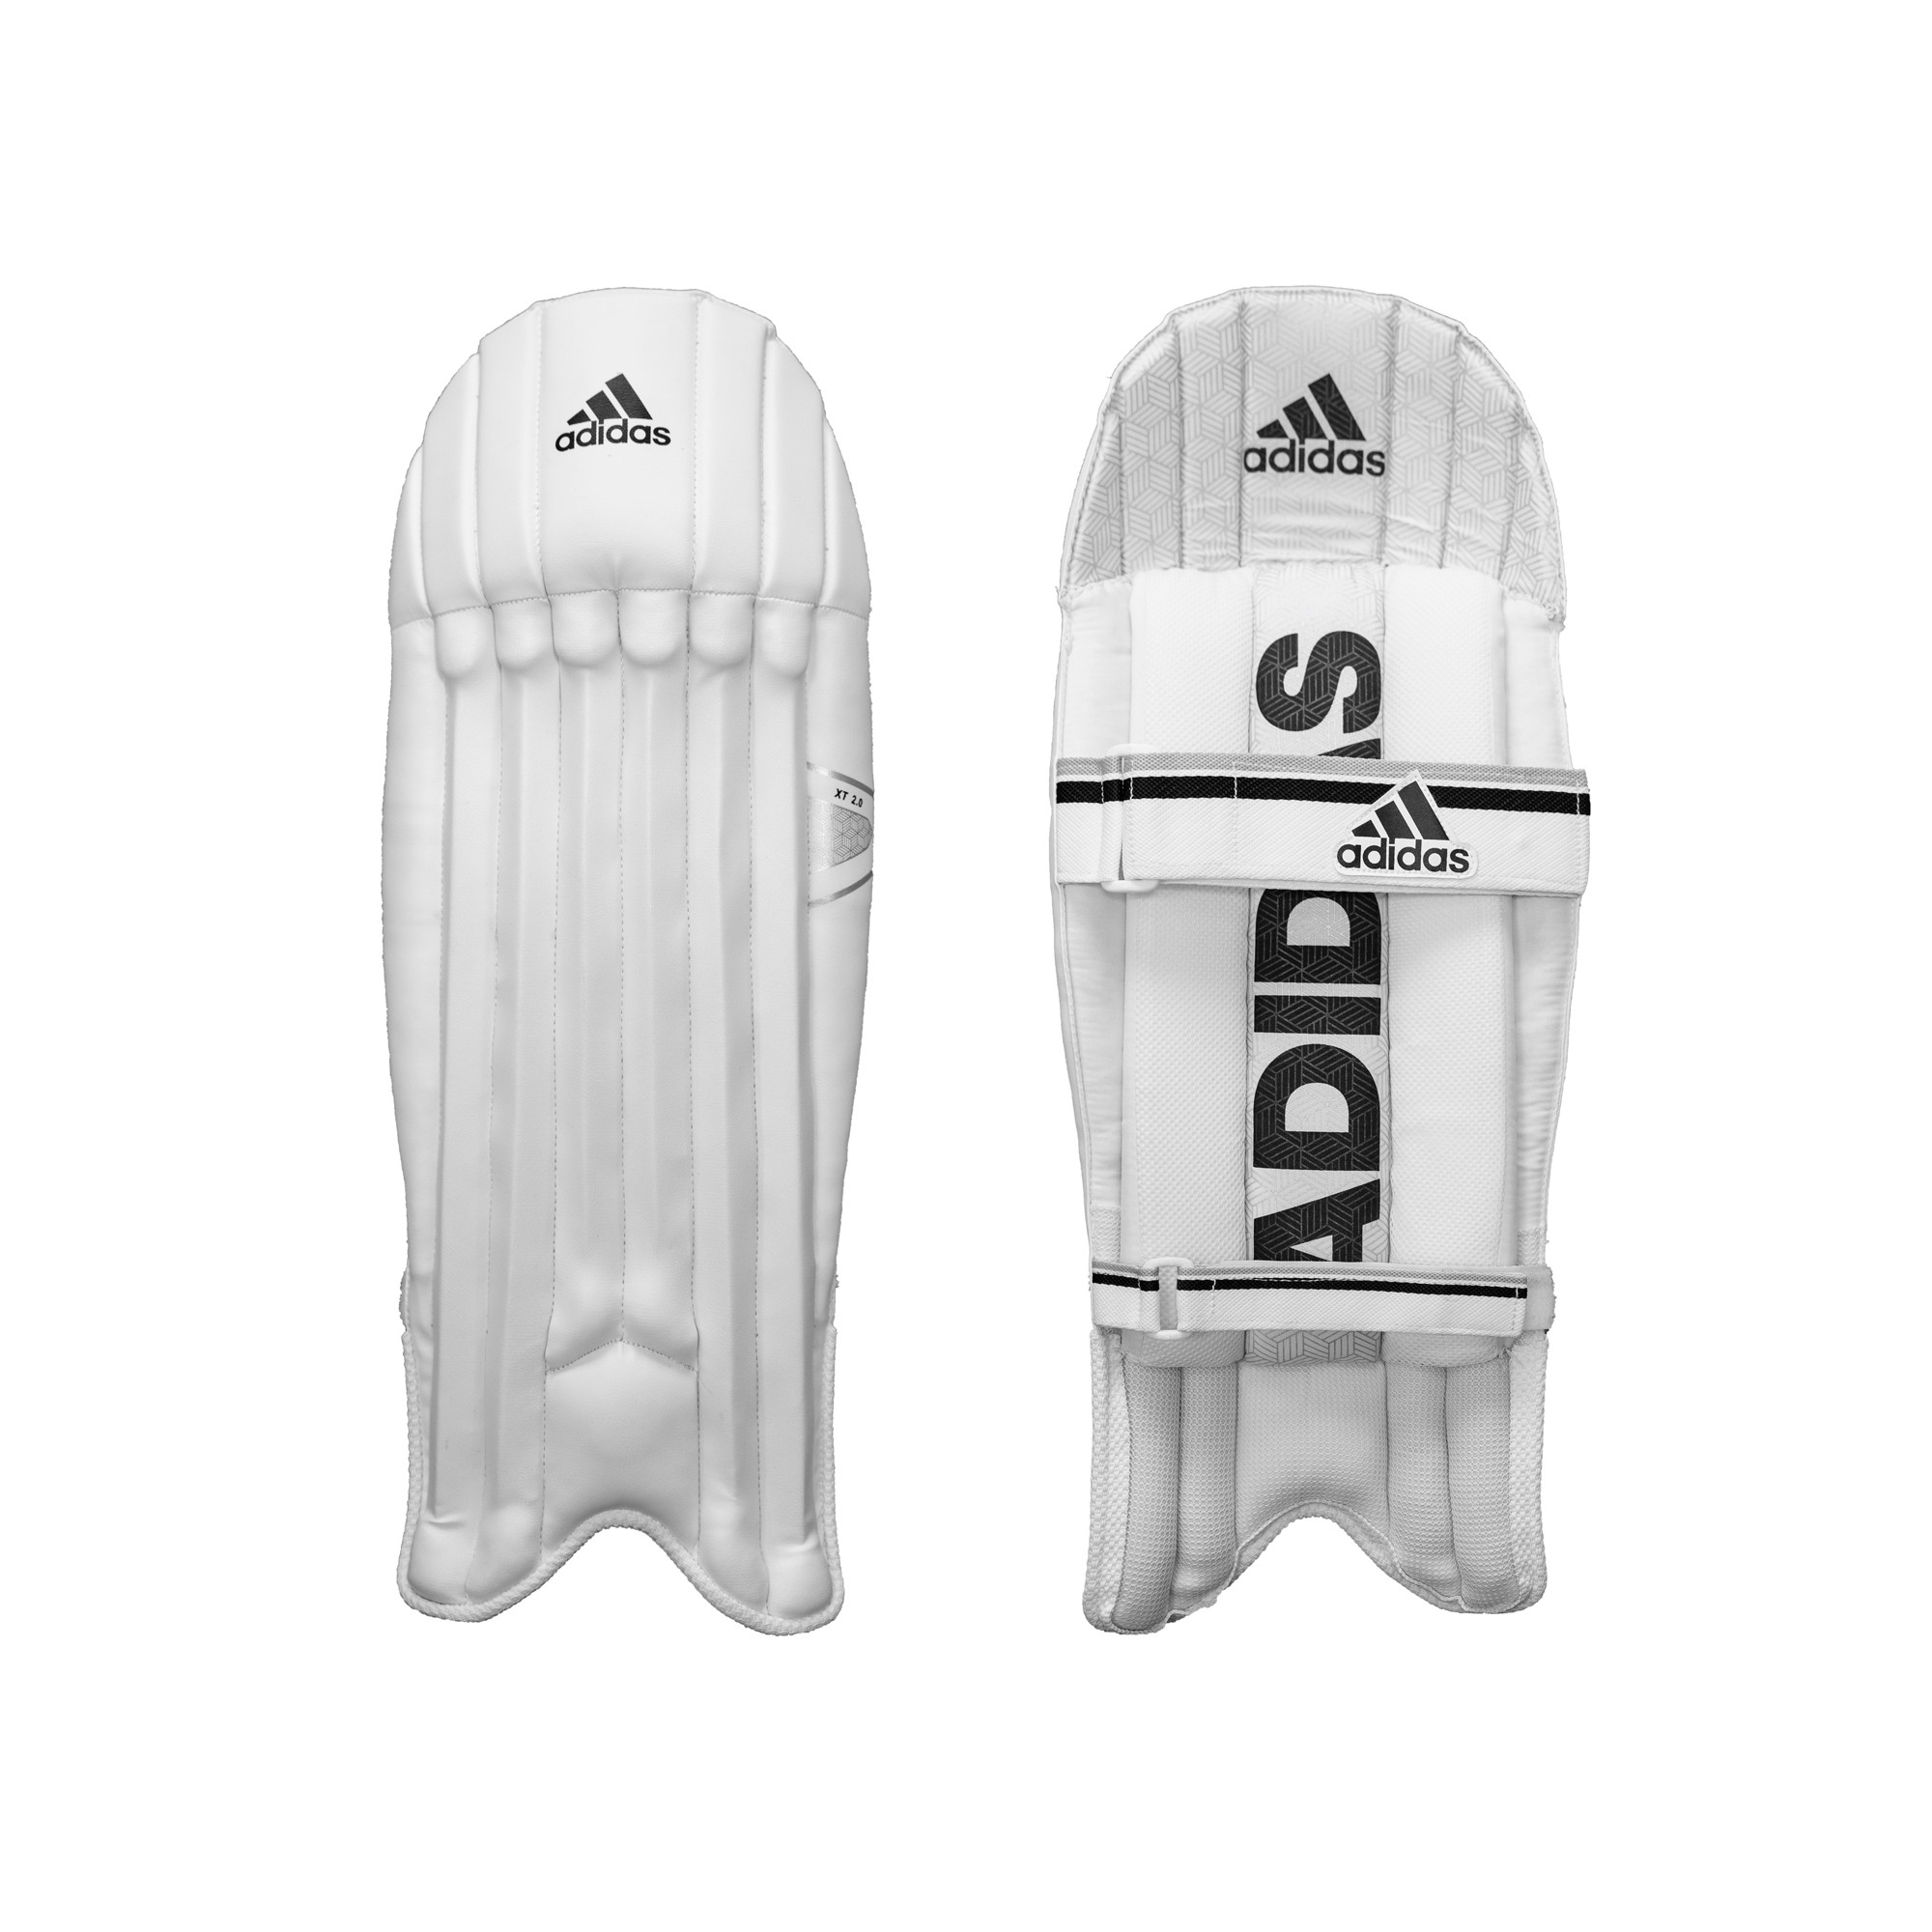 2019 Adidas XT 2.0 Junior Wicket Keeping Pads